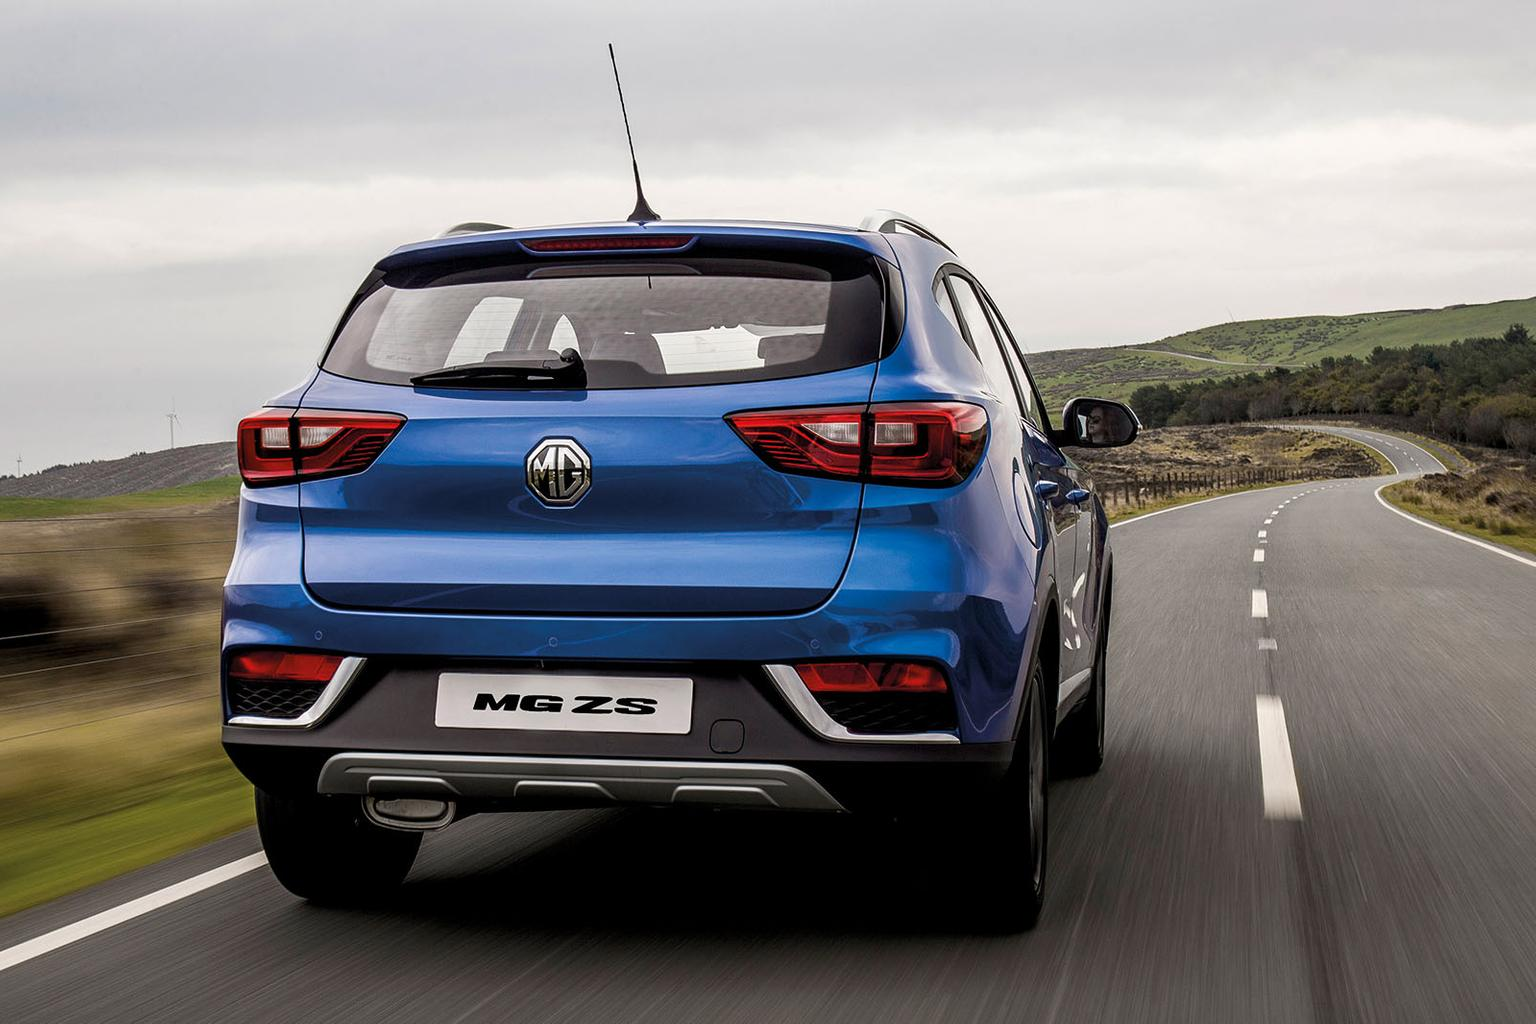 2017 MG ZS review - price, specs and release date